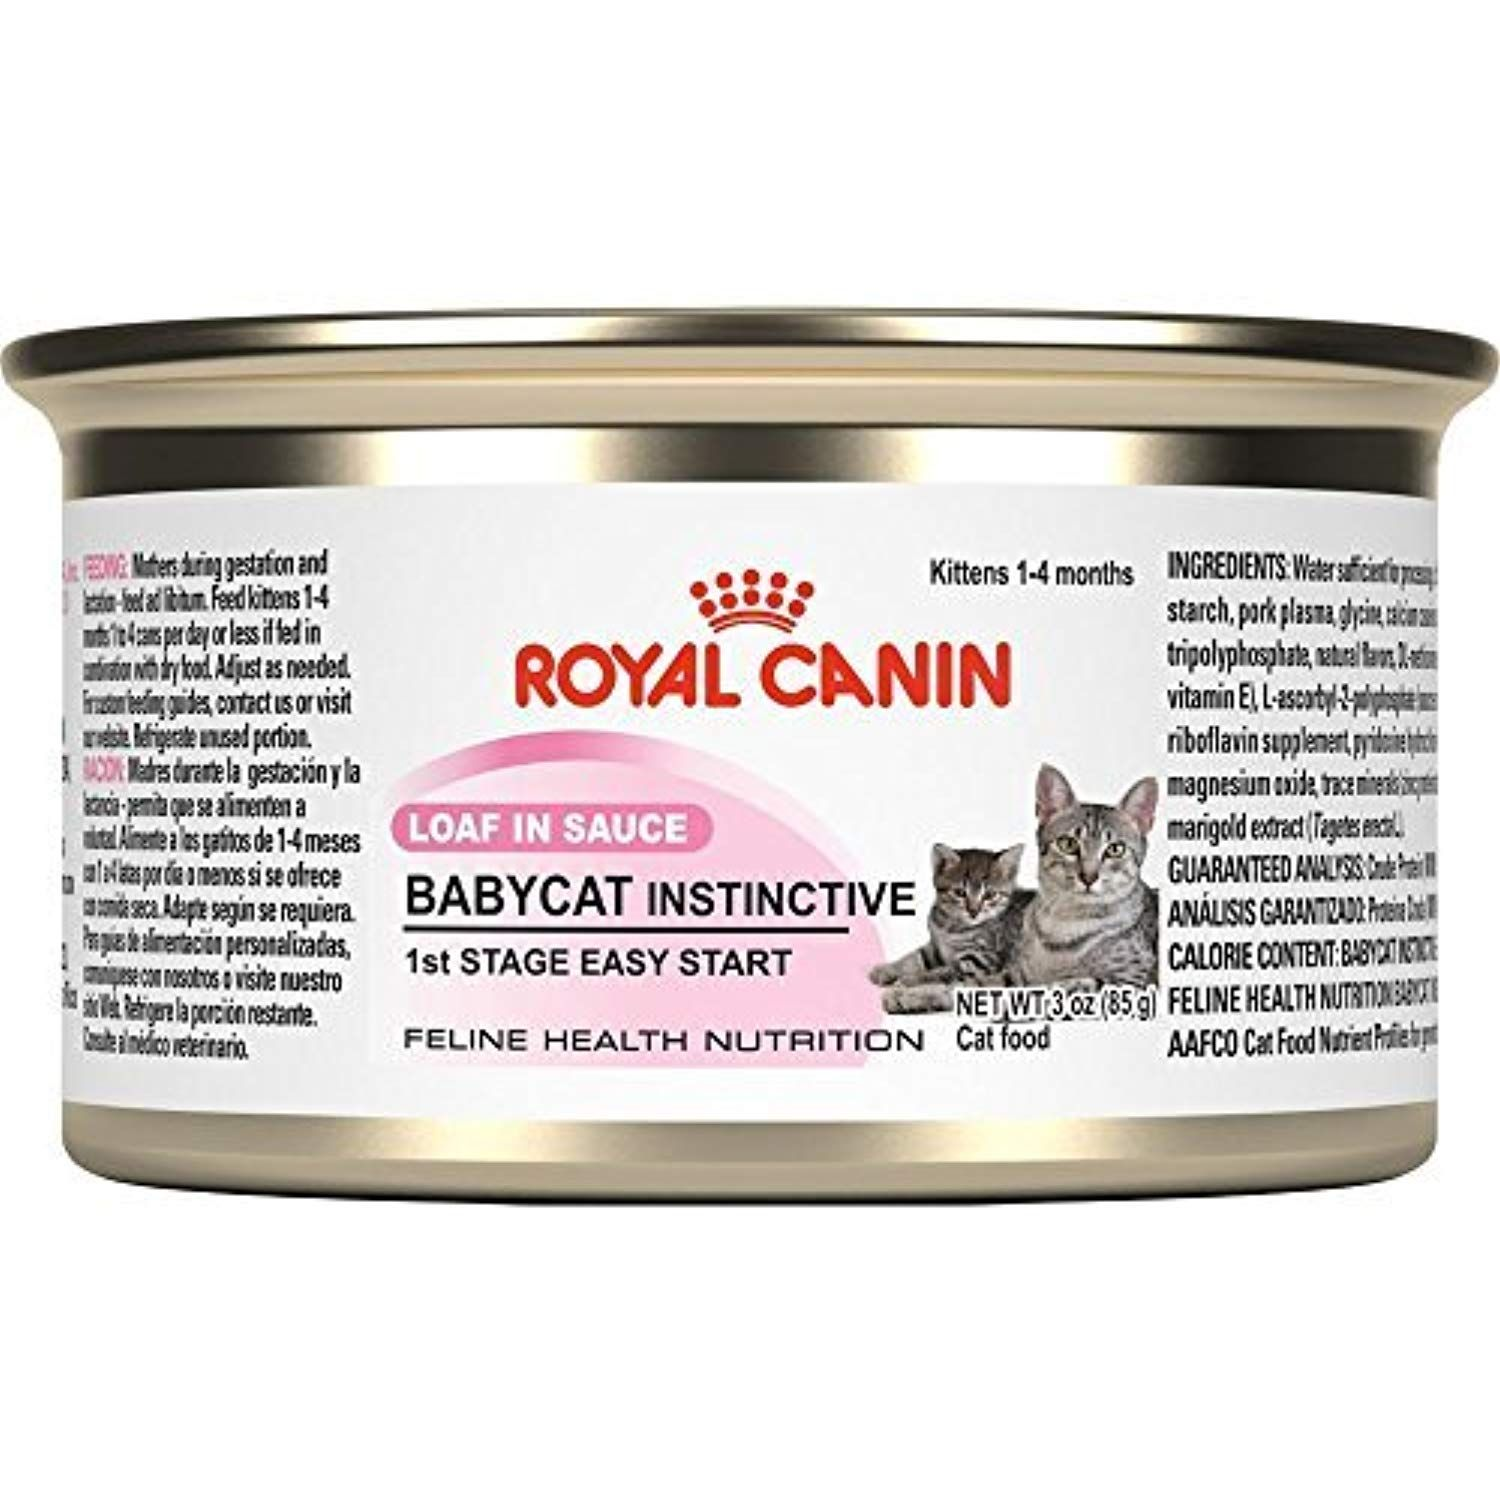 Royal Canin Canned Cat Food Babycat Formula Pack Of 24 3 Ounce Cans By Royal Canin Visit The Image Link More De Kitten Food Canned Cat Food Feline Health